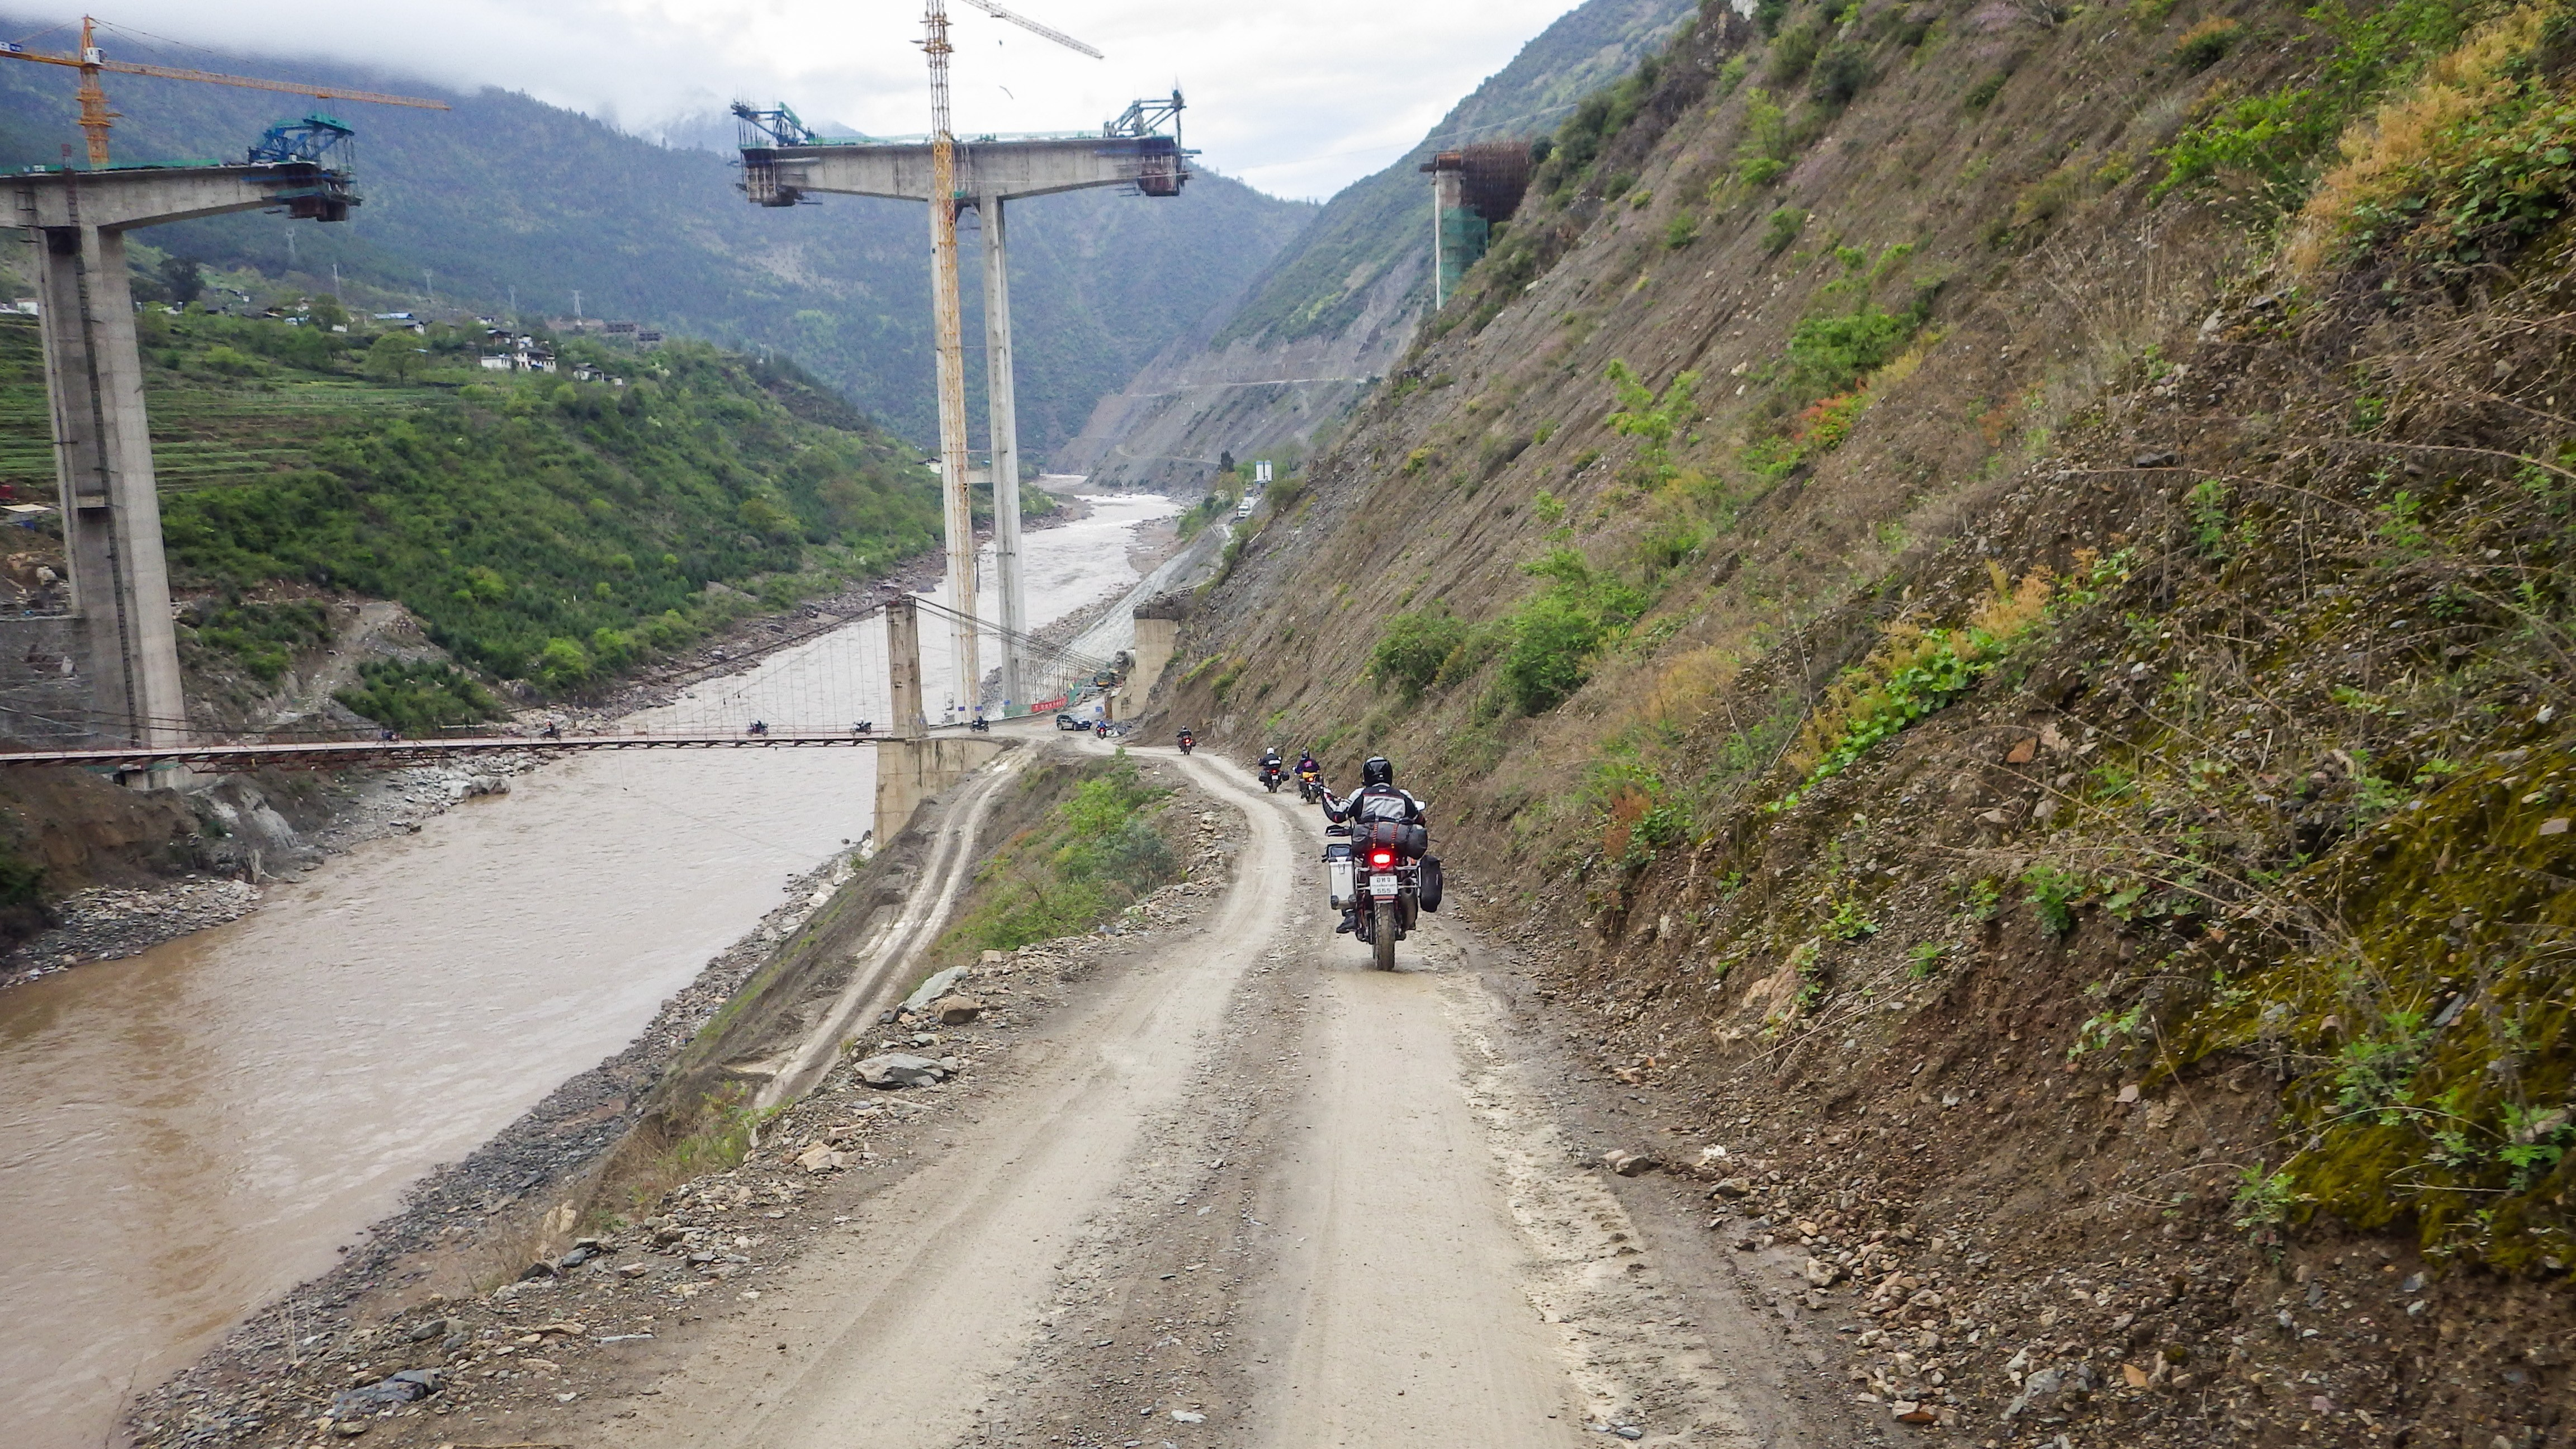 China motorcycle tour group crosses the Mekong River